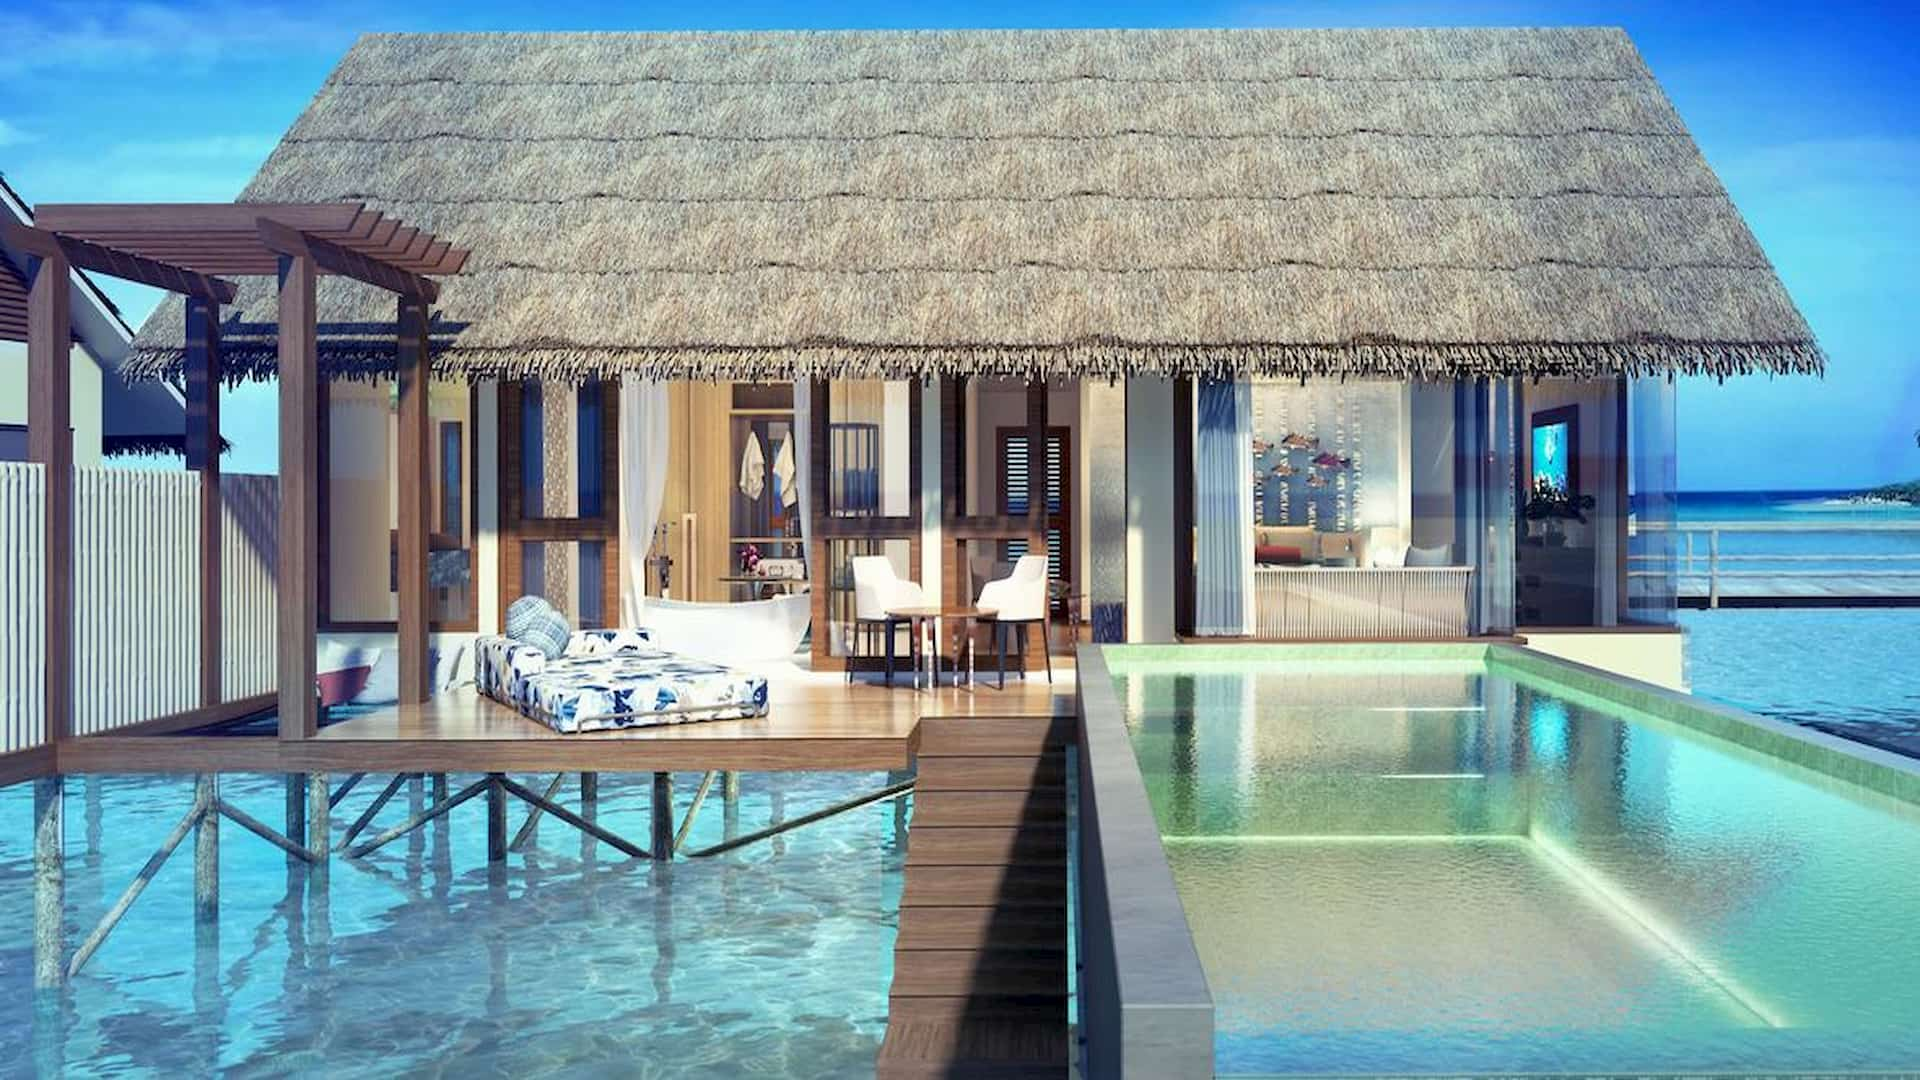 Resort Maldive Ozen by Atmosphere Water Villas with Pool